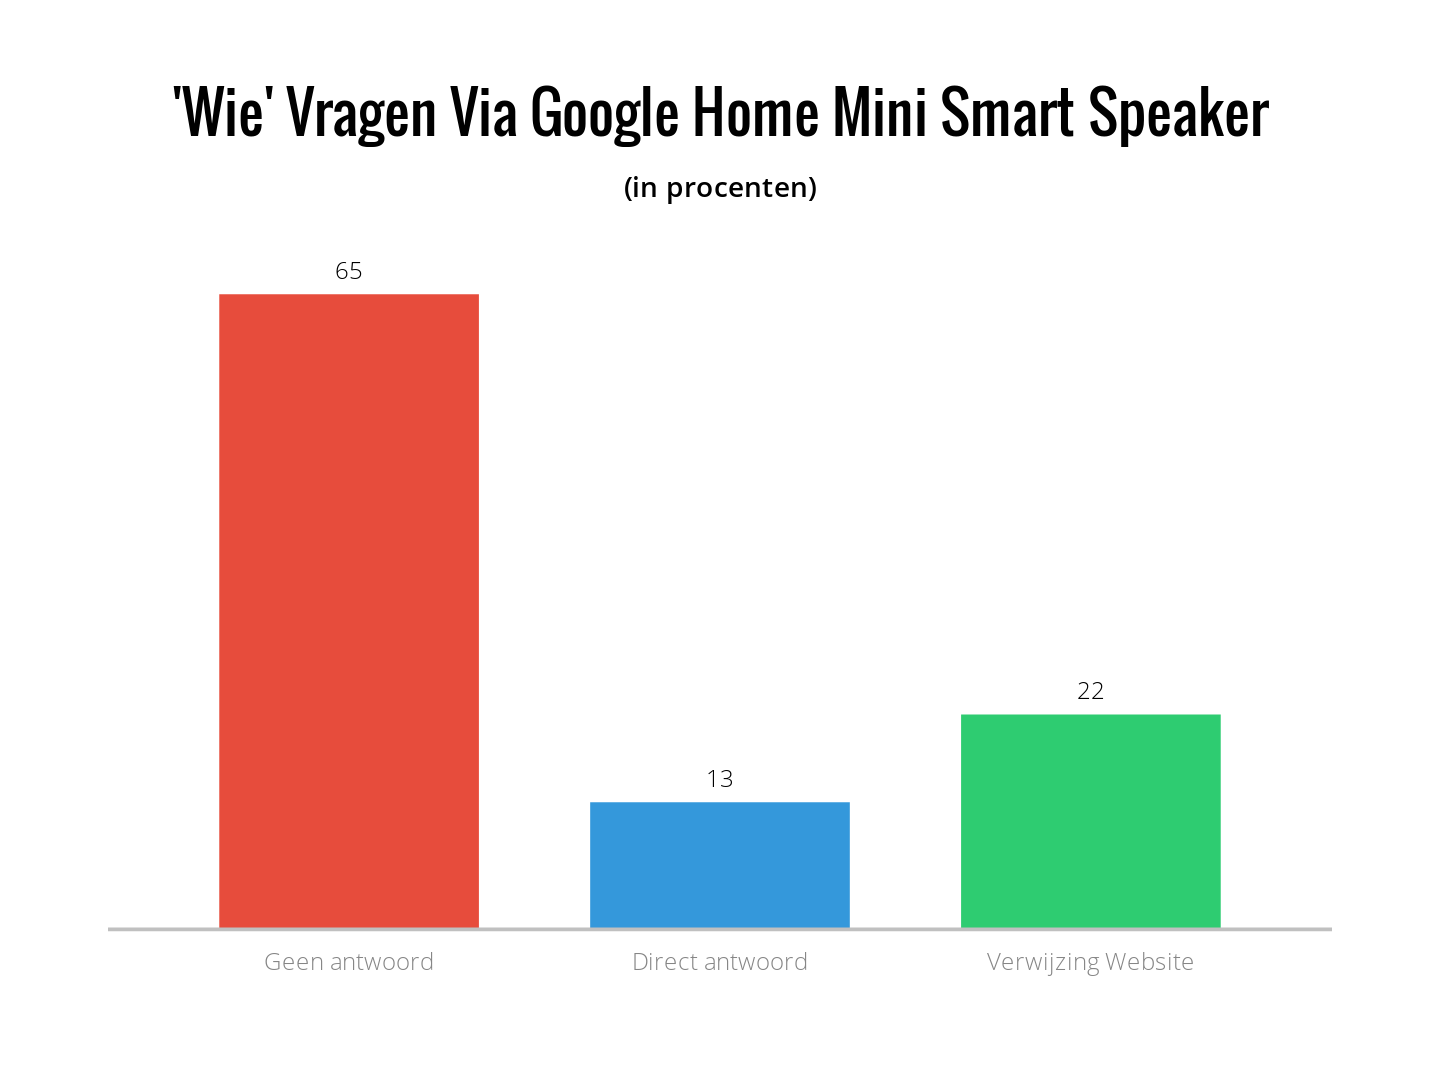 Wie vragen via google home mini smart speaker